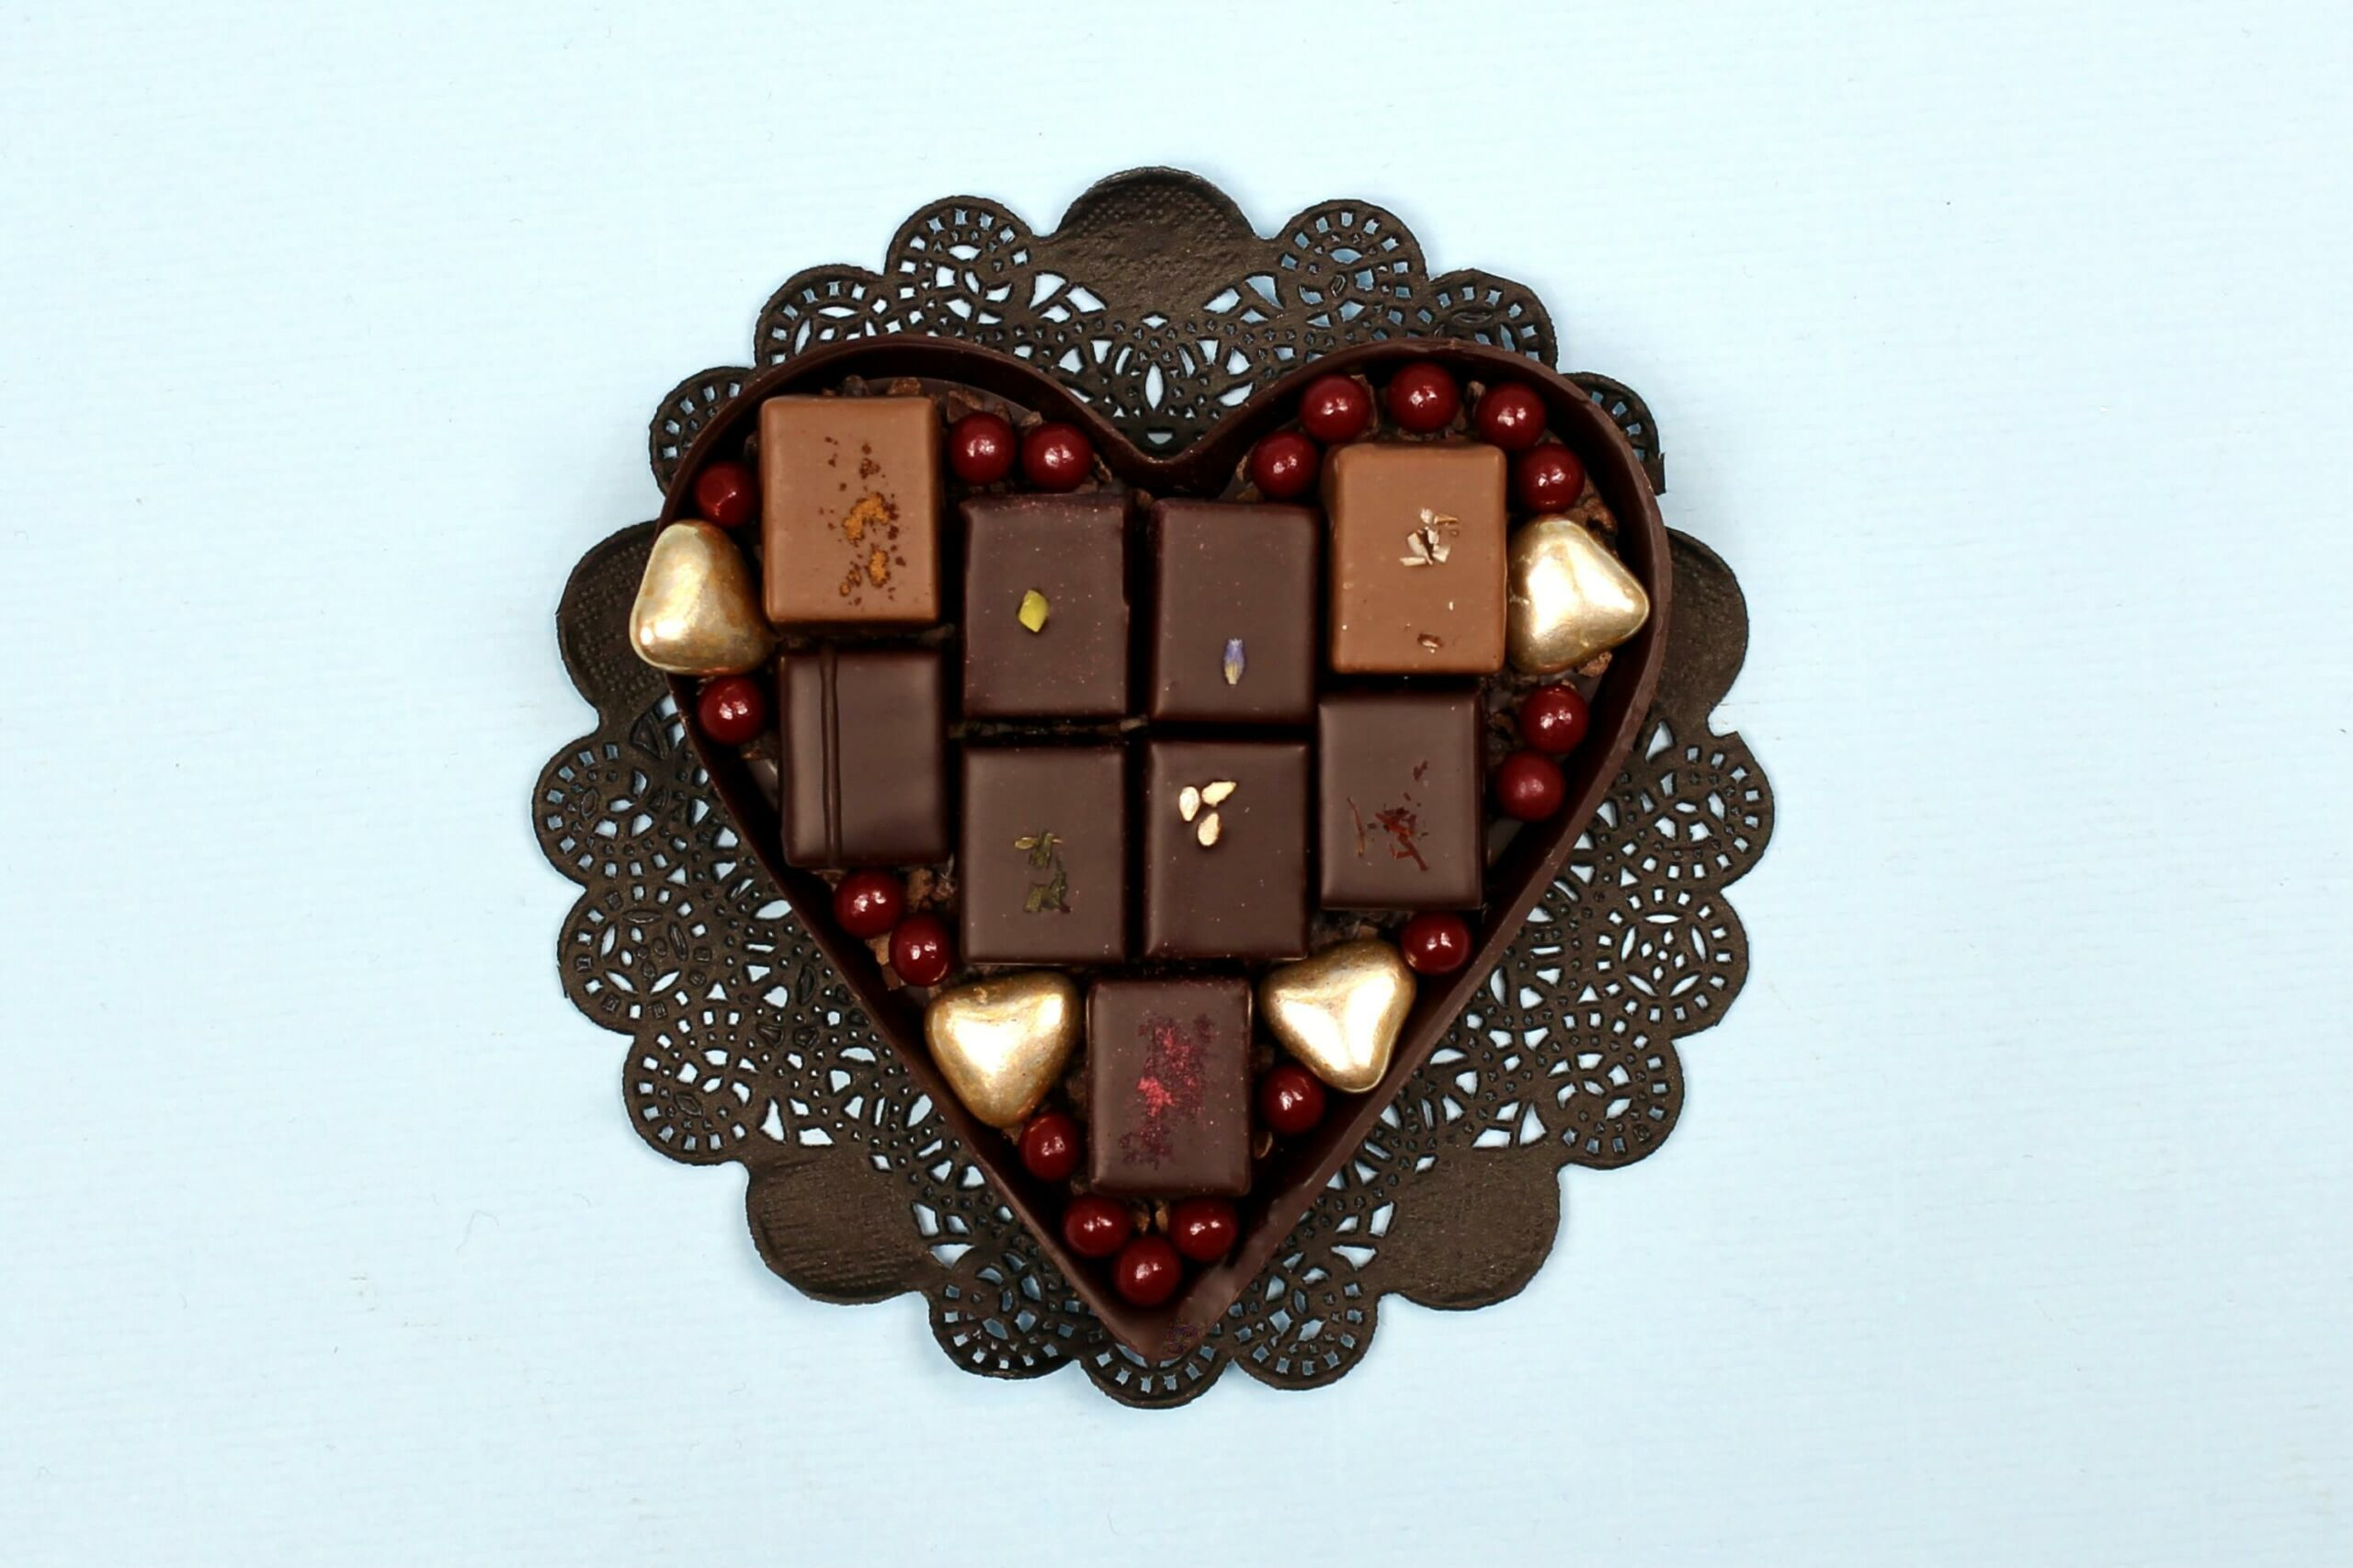 hilde devolder chocolatier dark chocolate heart with treats